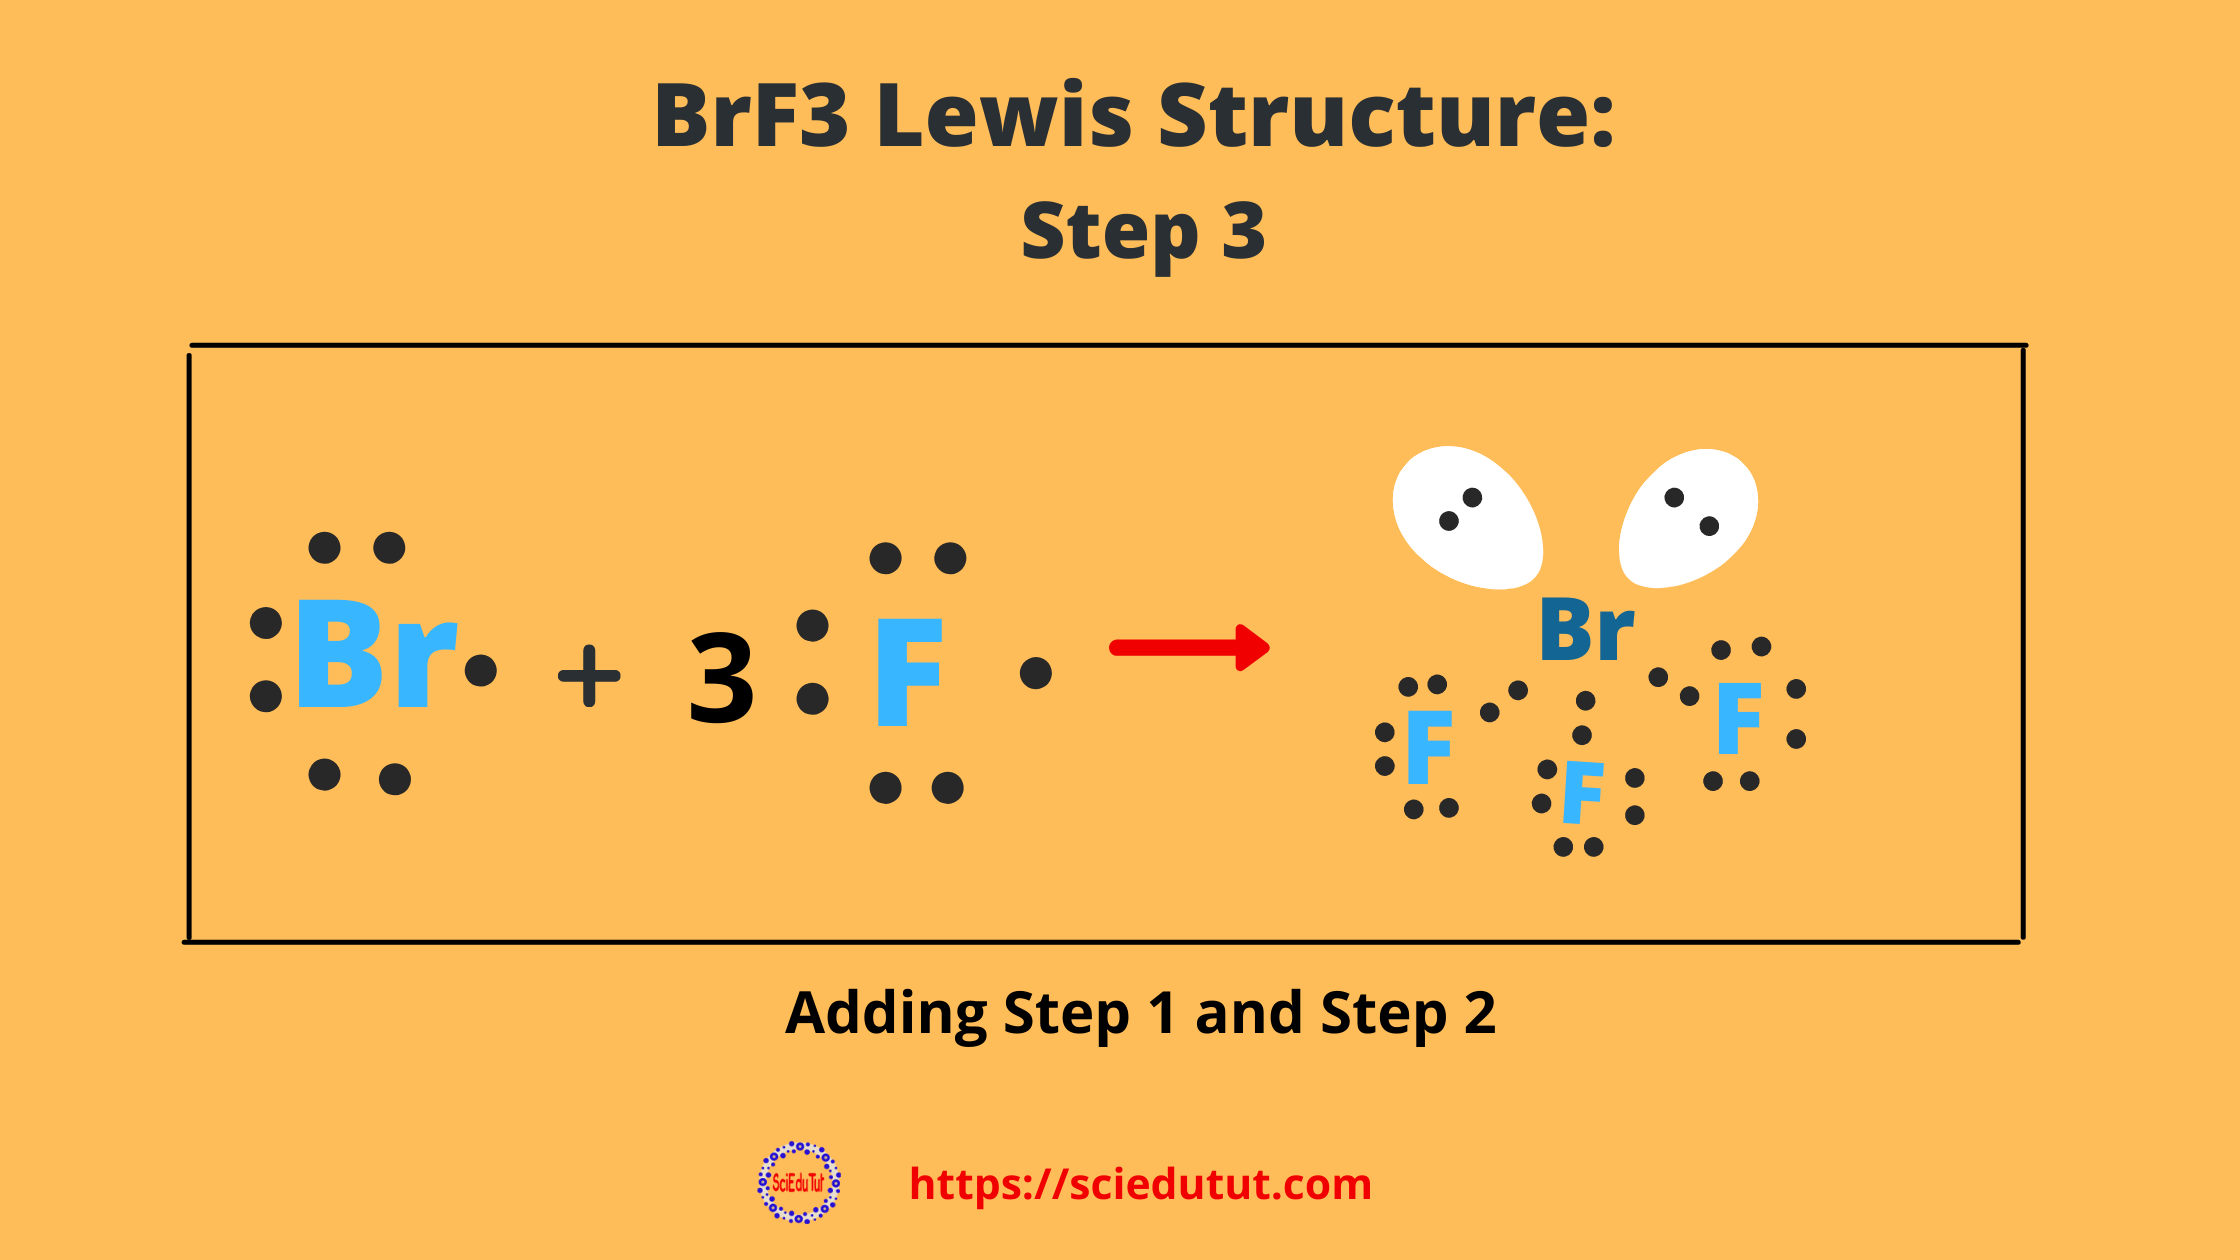 How to draw BrF3 Lewis Structure?